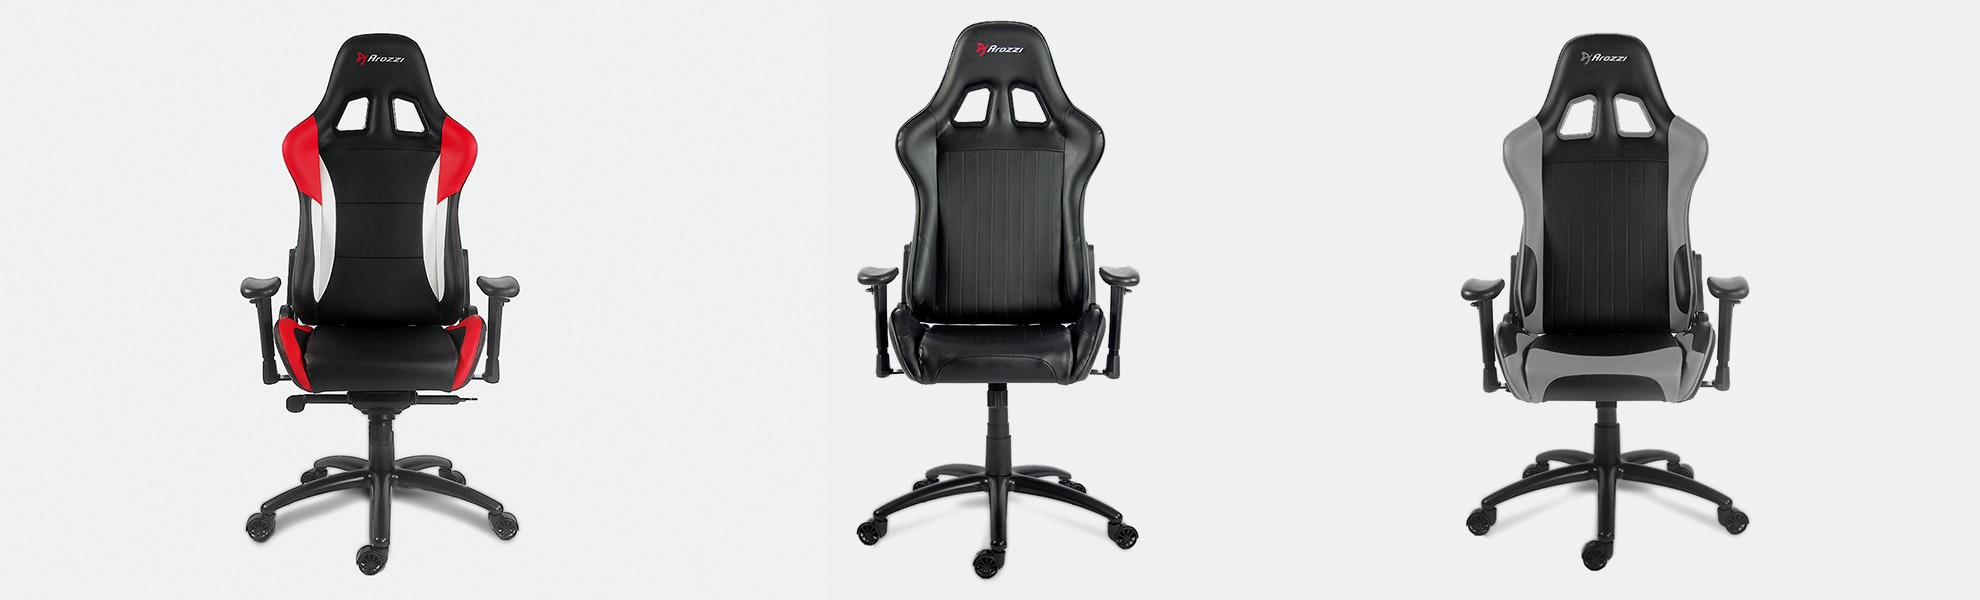 gaming chair companies teal leather arozzi verona pro chairs price reviews massdrop